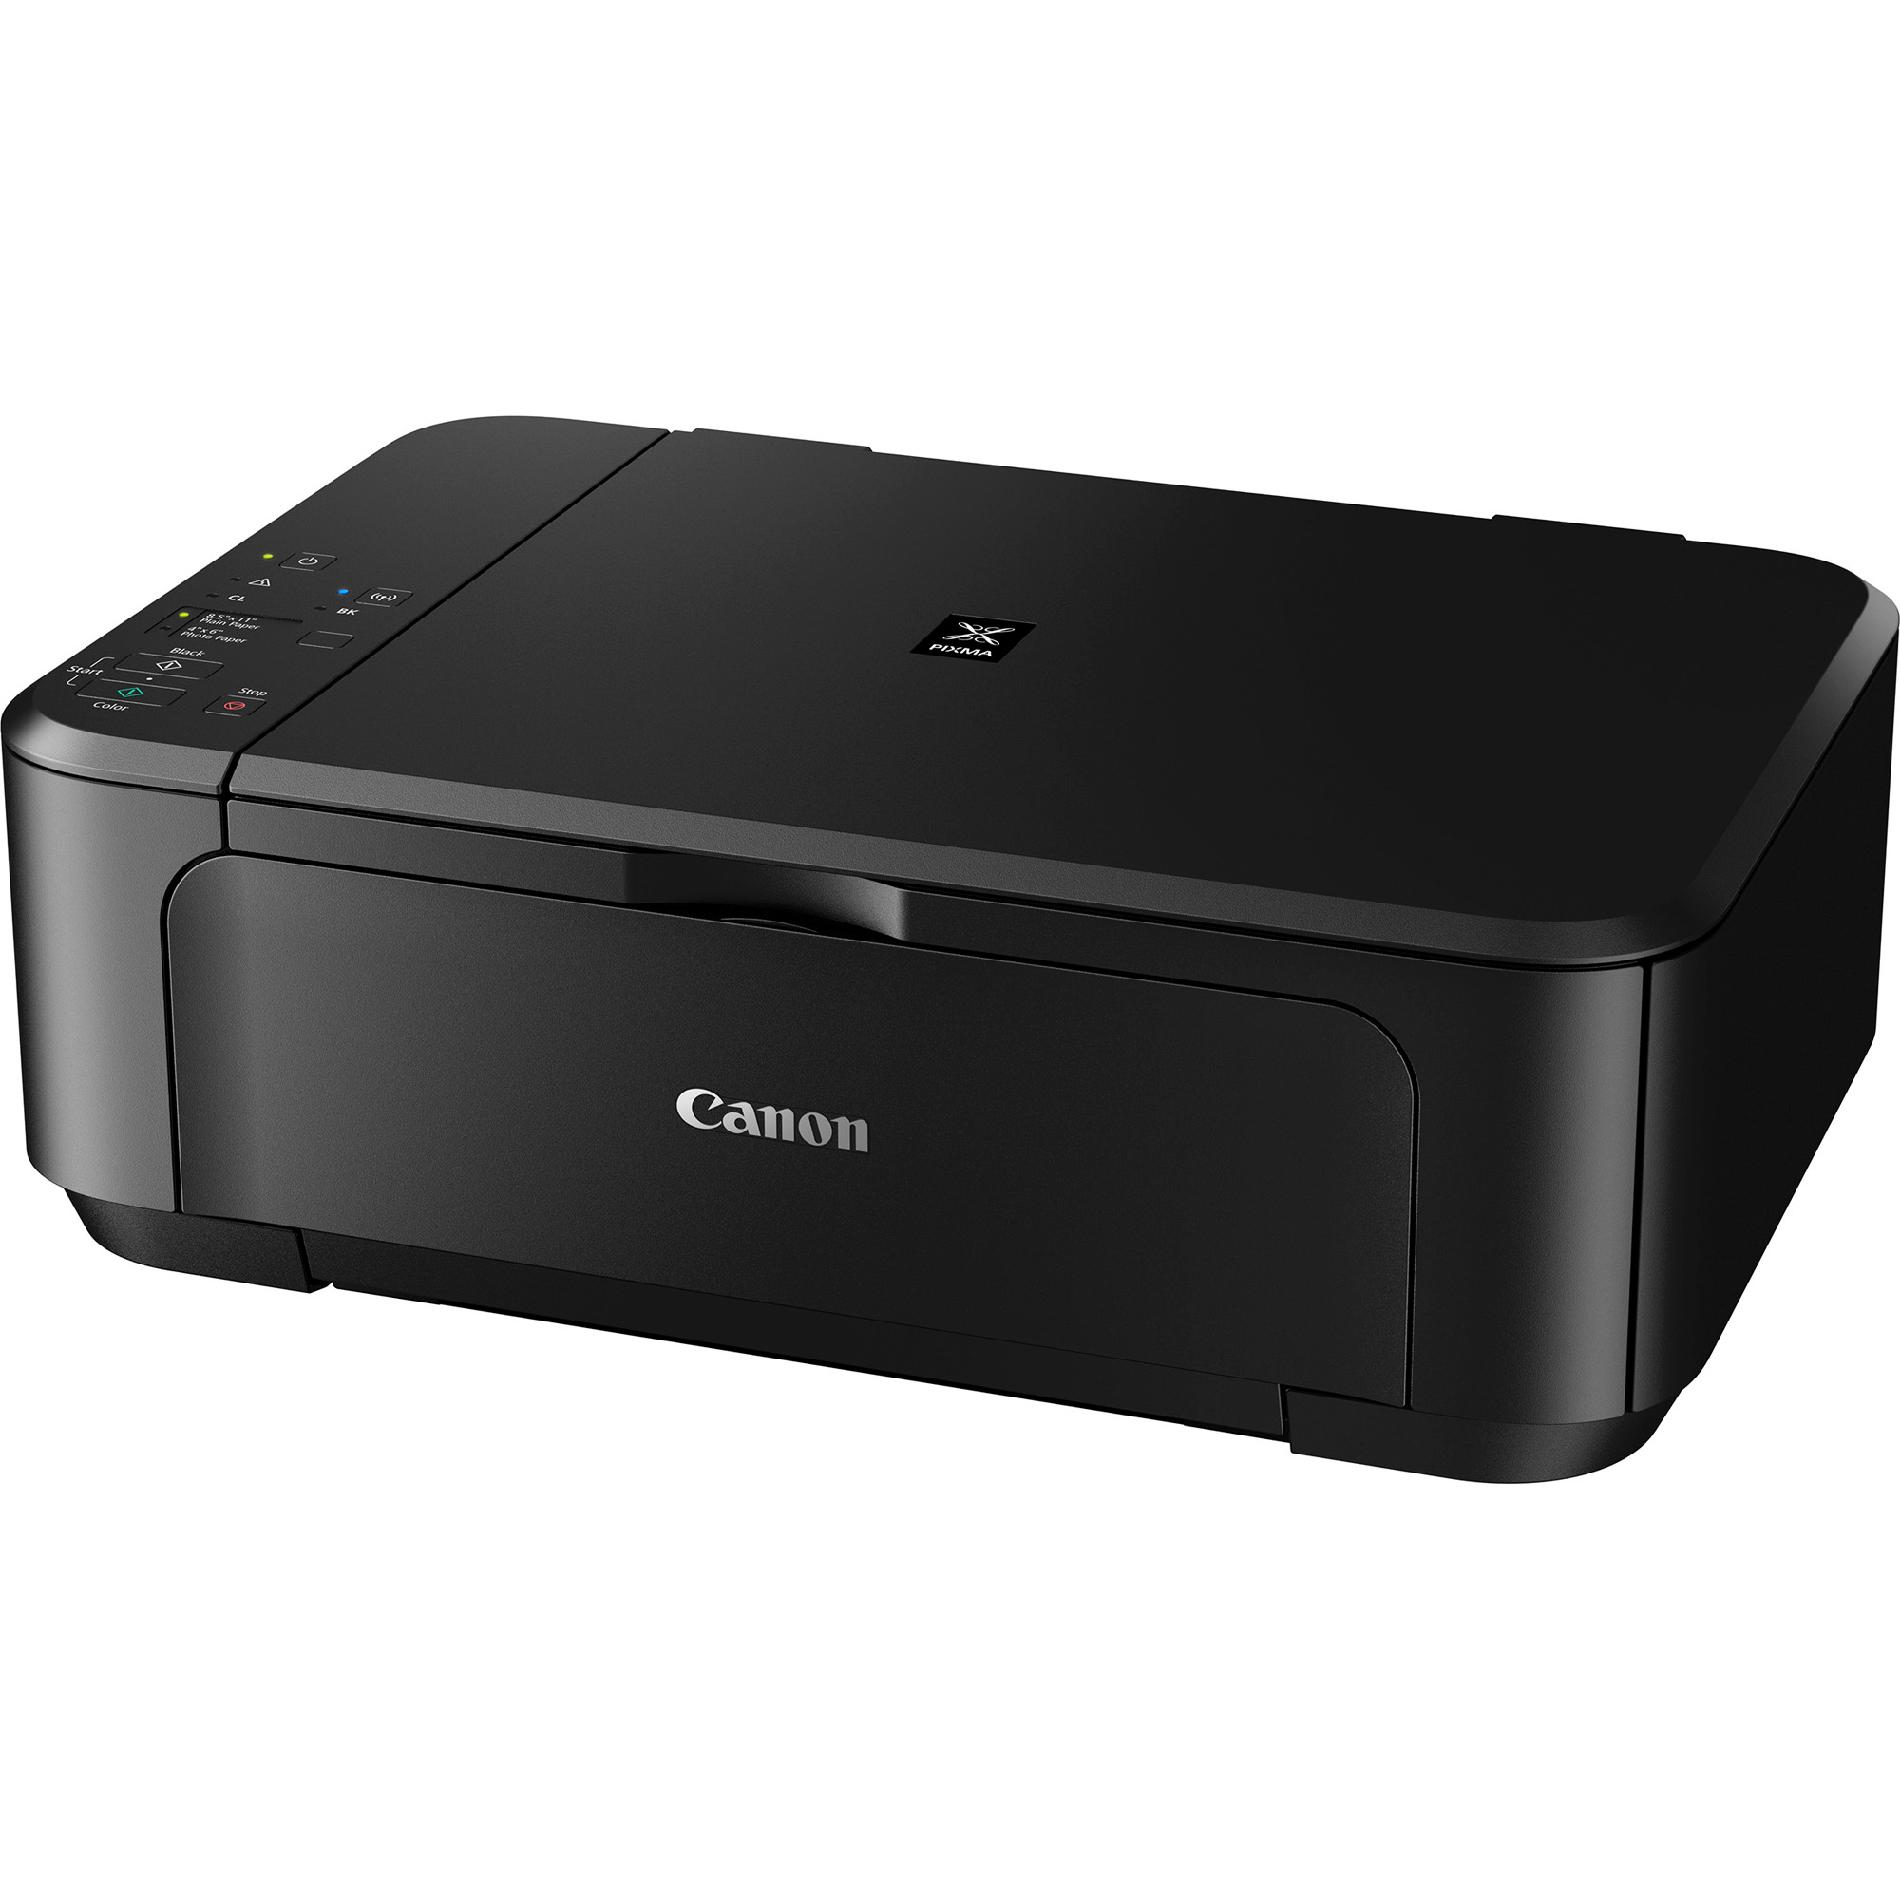 Canon Pixma Wireless Inkjet Photo All-in-One Printer MG3520